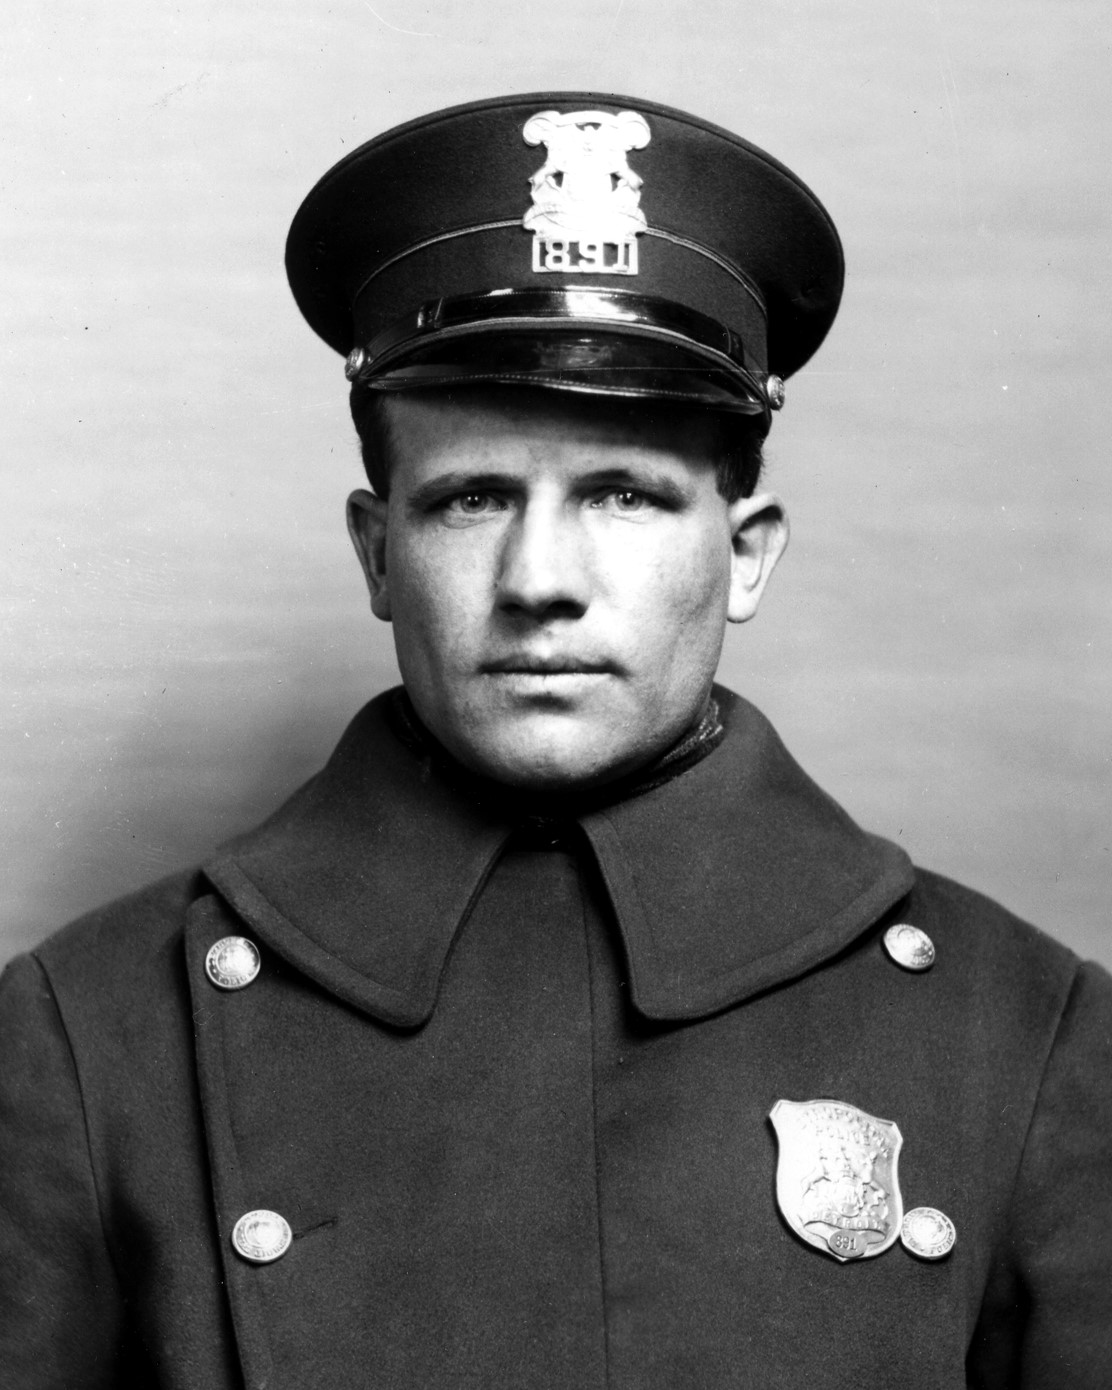 Police Officer Albert J. Fink | Detroit Police Department, Michigan